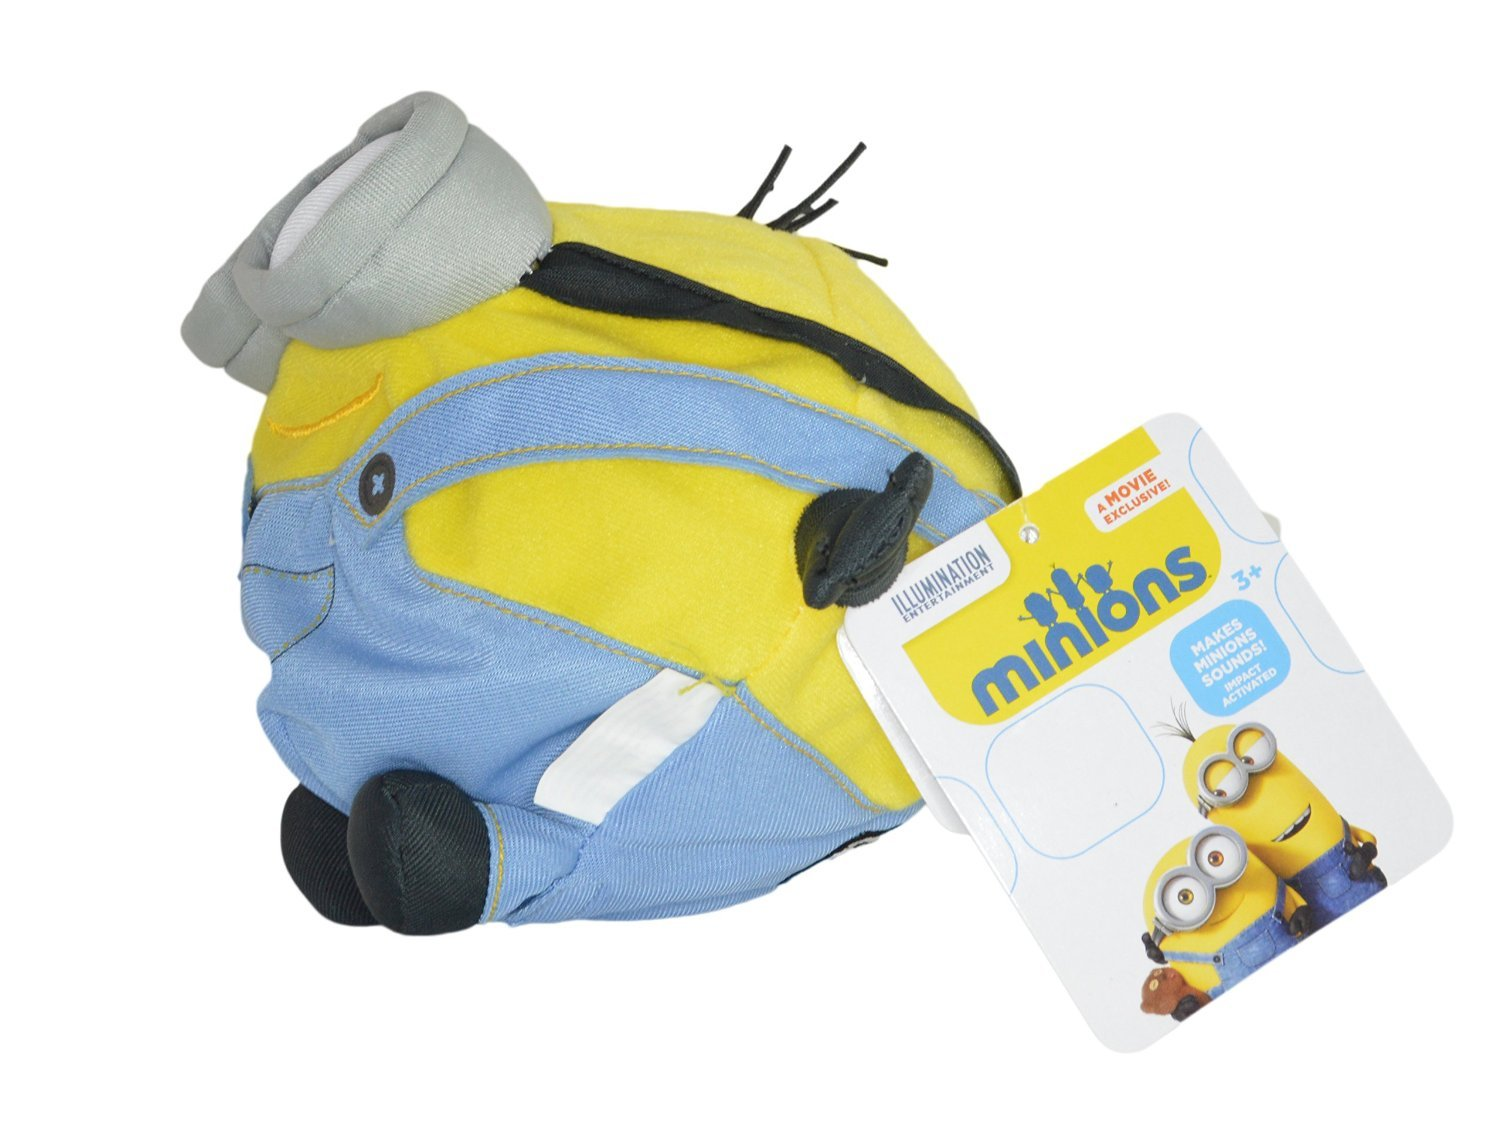 Nightzone light up rebound ball - Amazon Com The Minions Kevin Fuzzbie Despicable Me 7 Minion Fuzzbies Toys Games